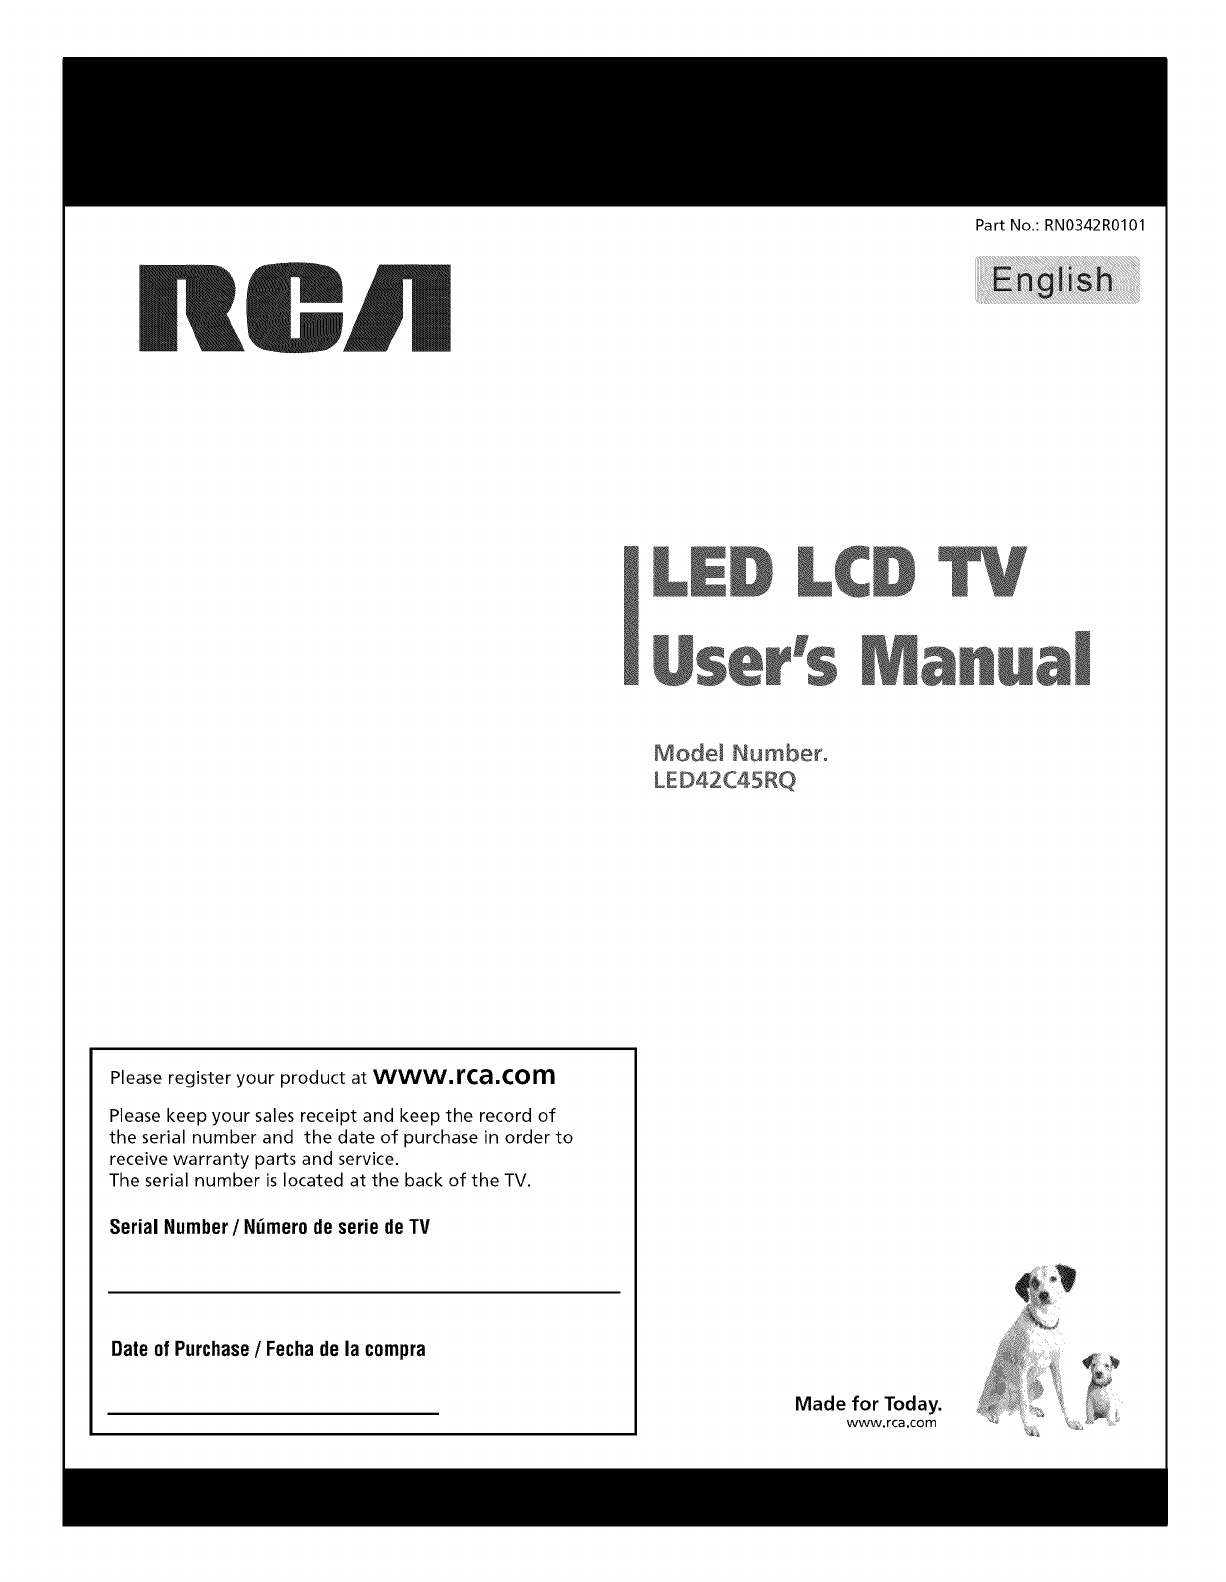 rca led42c45rq 1302146l user manual led television manuals and guides rh usermanual wiki Old RCA TV Manuals rca television l32hd31r manual